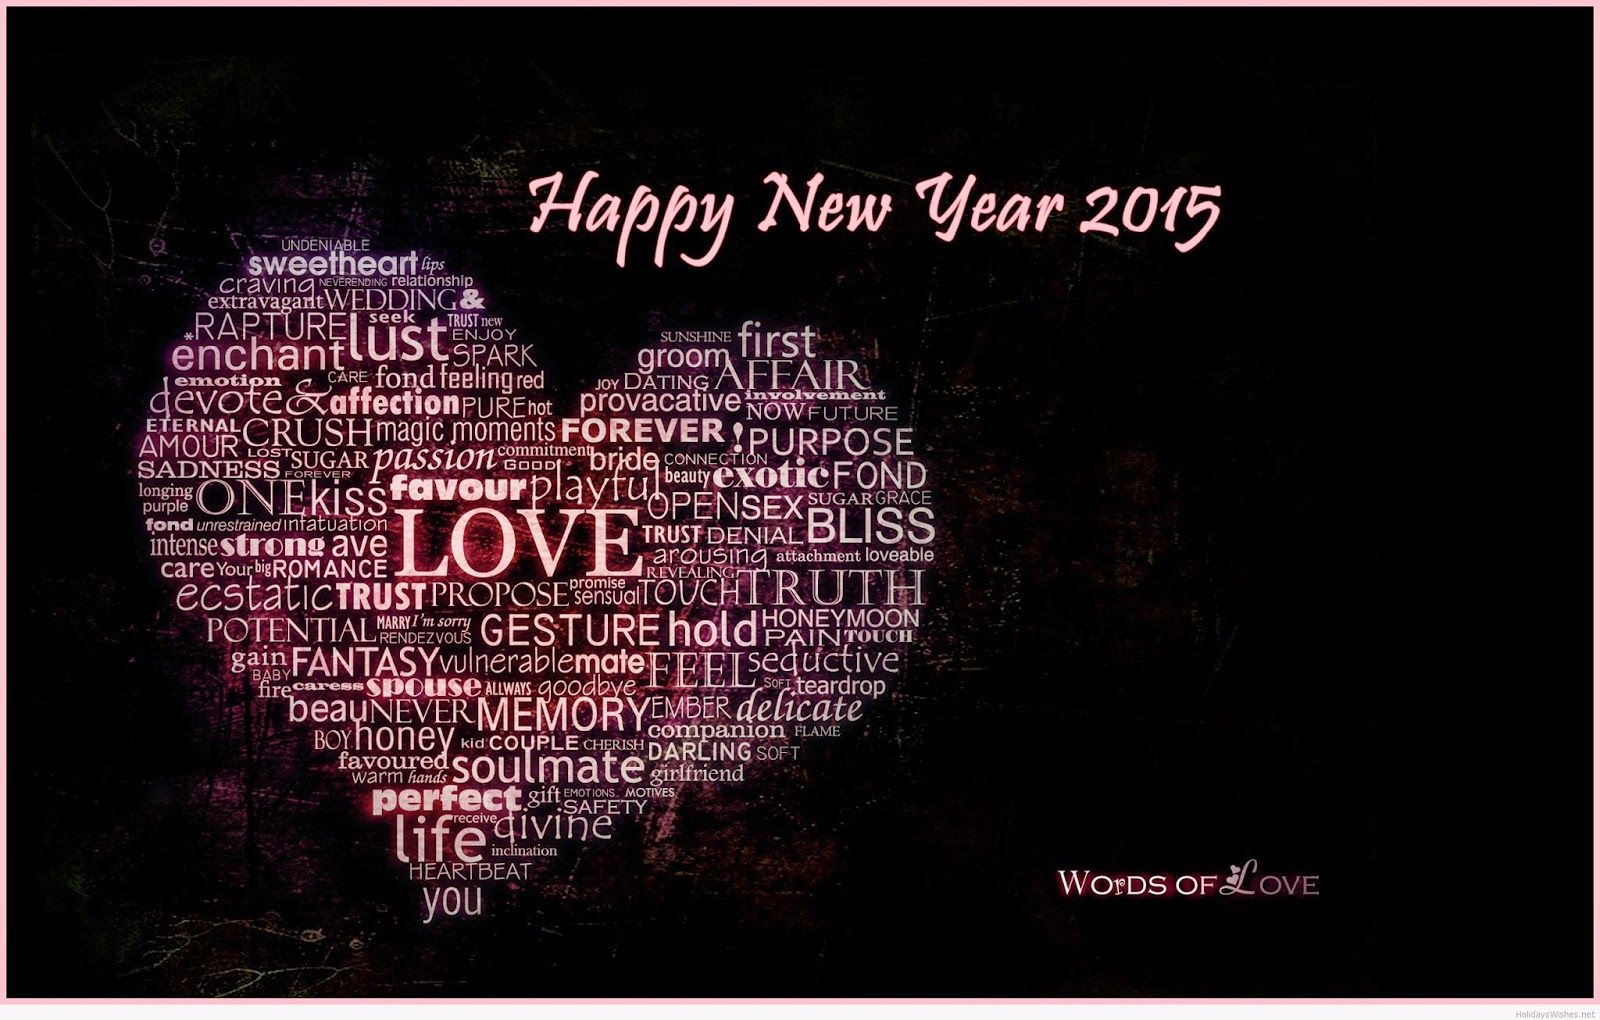 Happy New Year Sms Messages 2015 Happy New Year Wallpapers